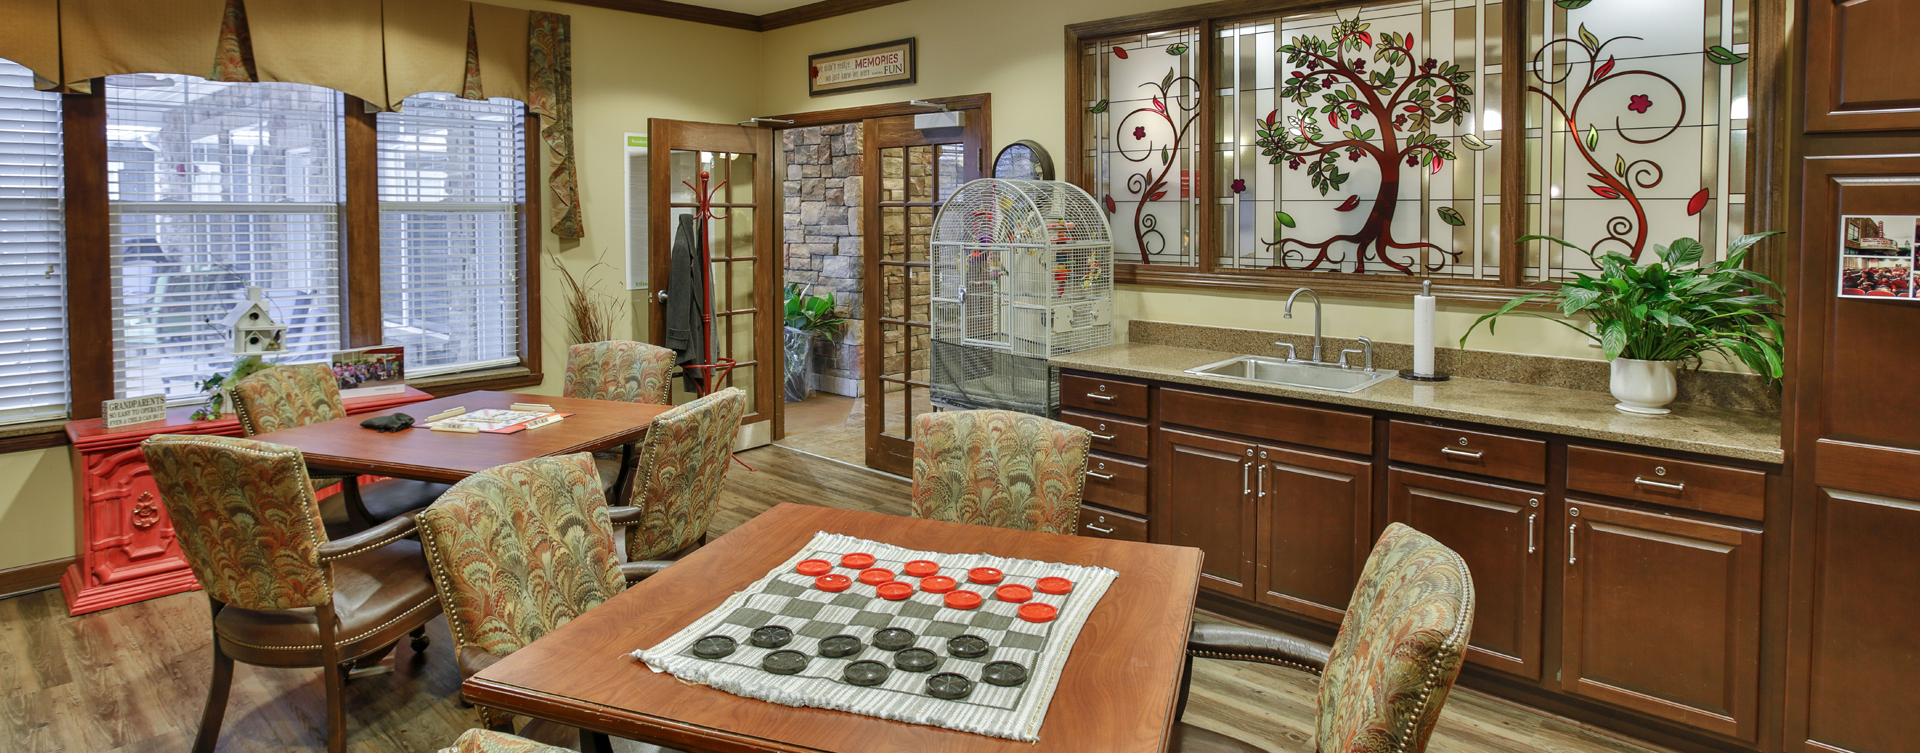 Enjoy a good card game with friends in the activity room at Bickford of Crown Point